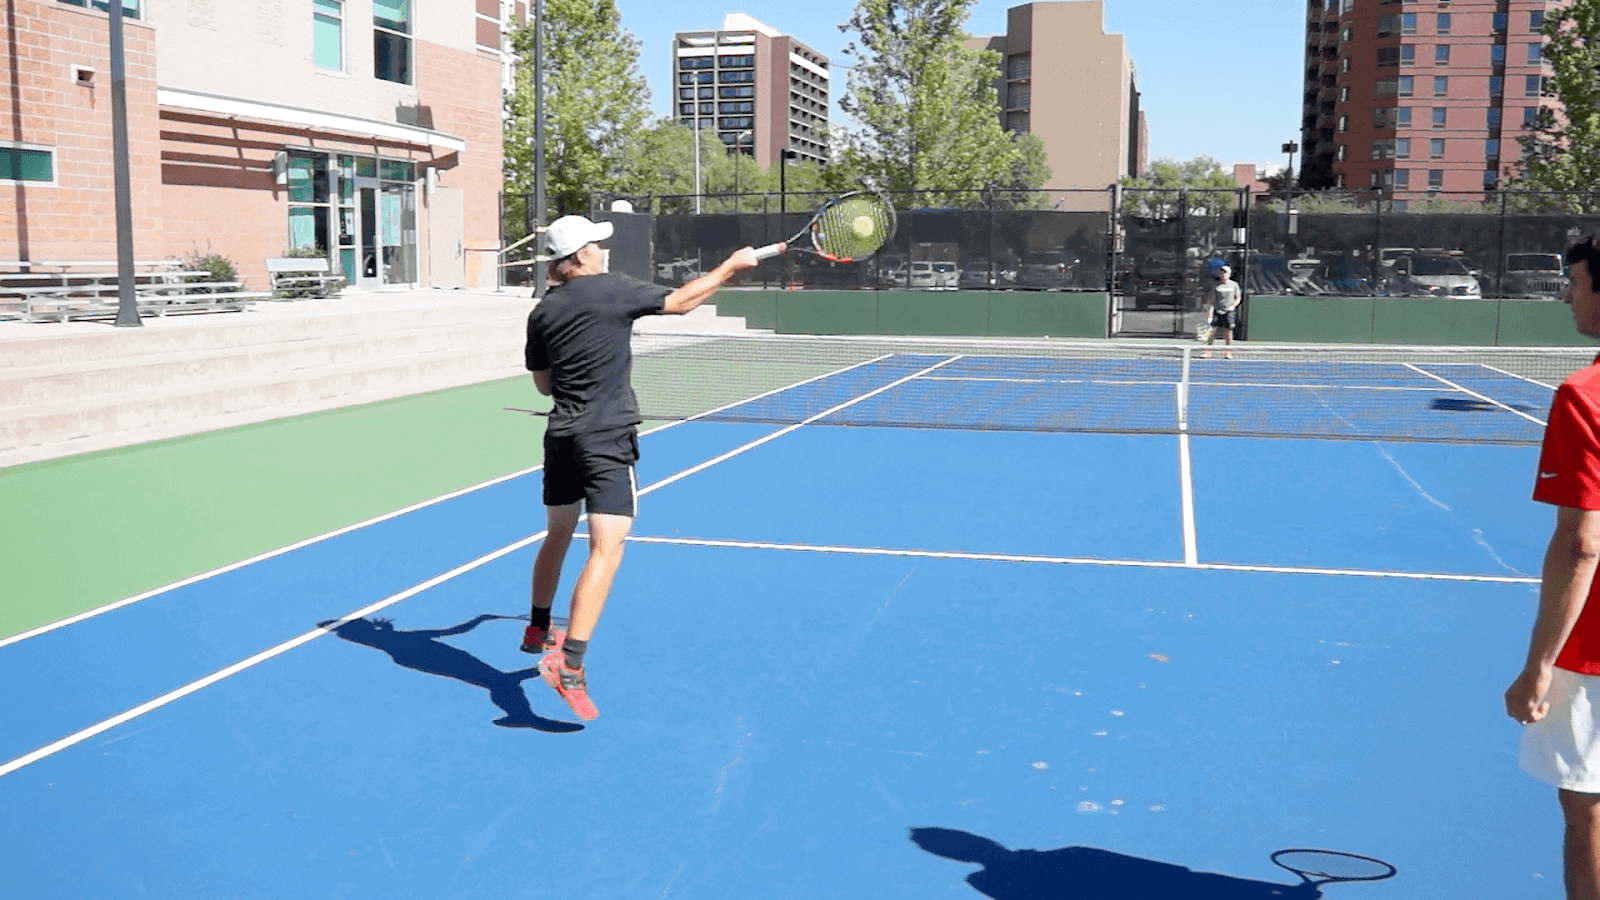 How to attach a second serve in tennis